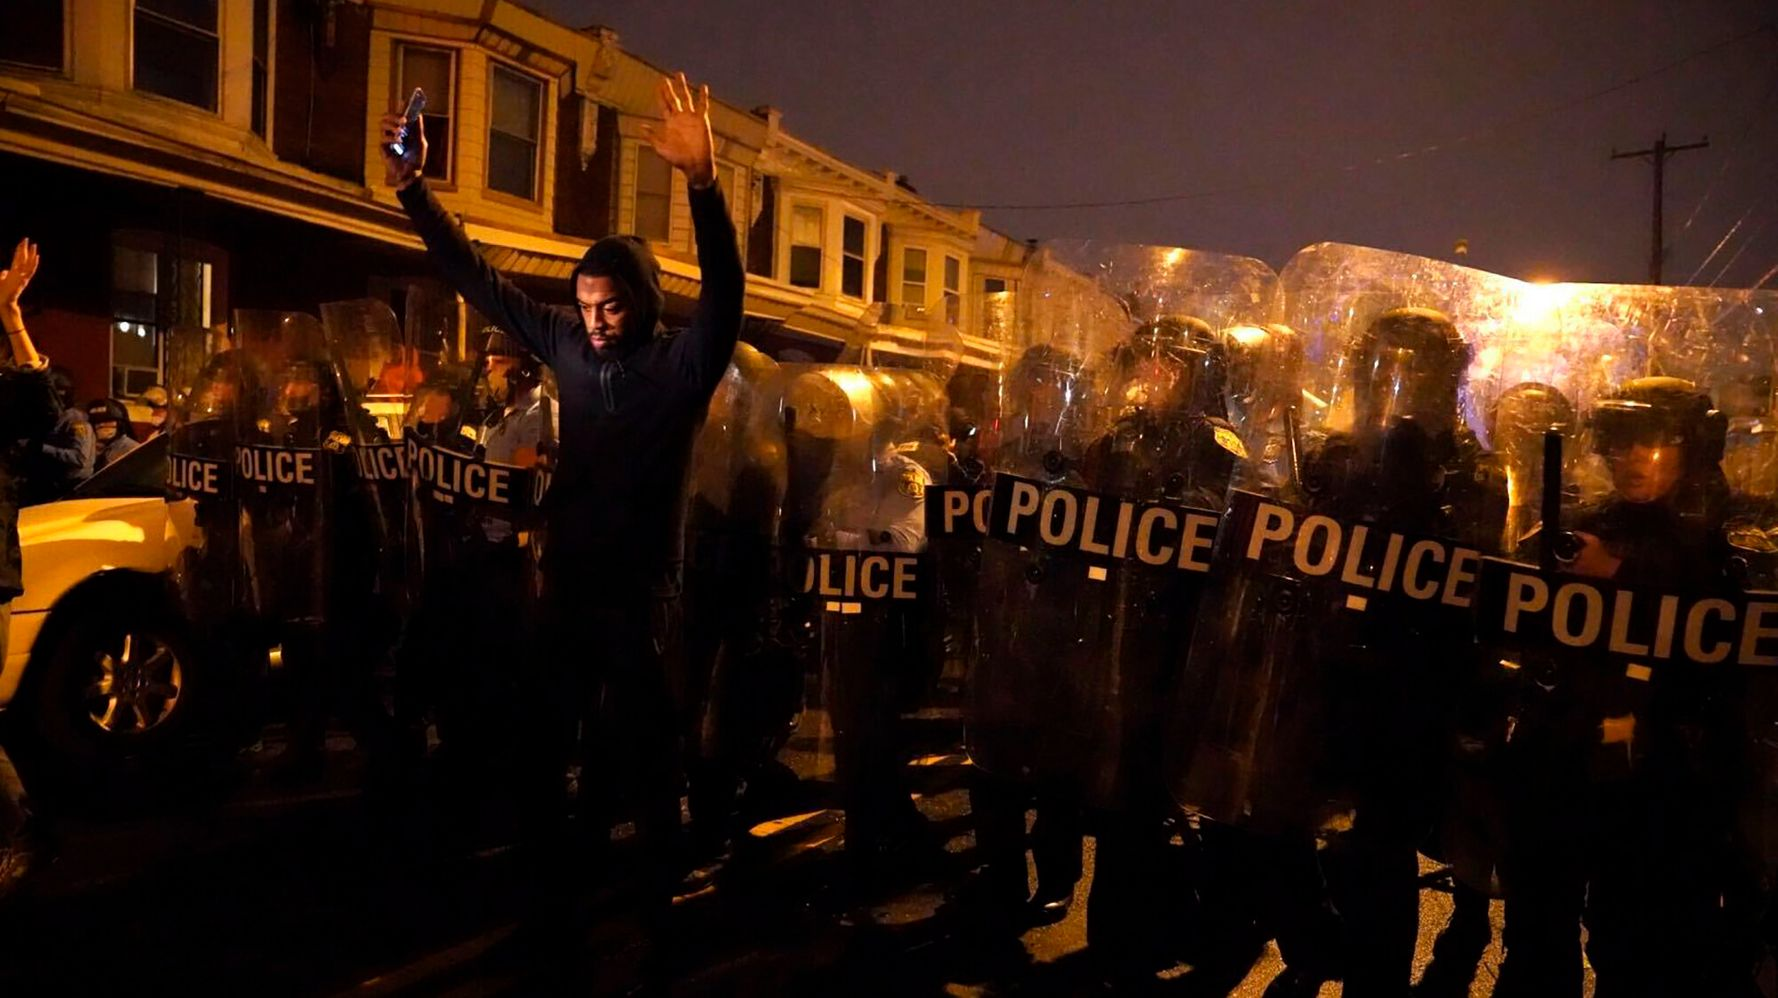 Philadelphia Police Fatally Shoot Black Man, Sparking Overnight Protests